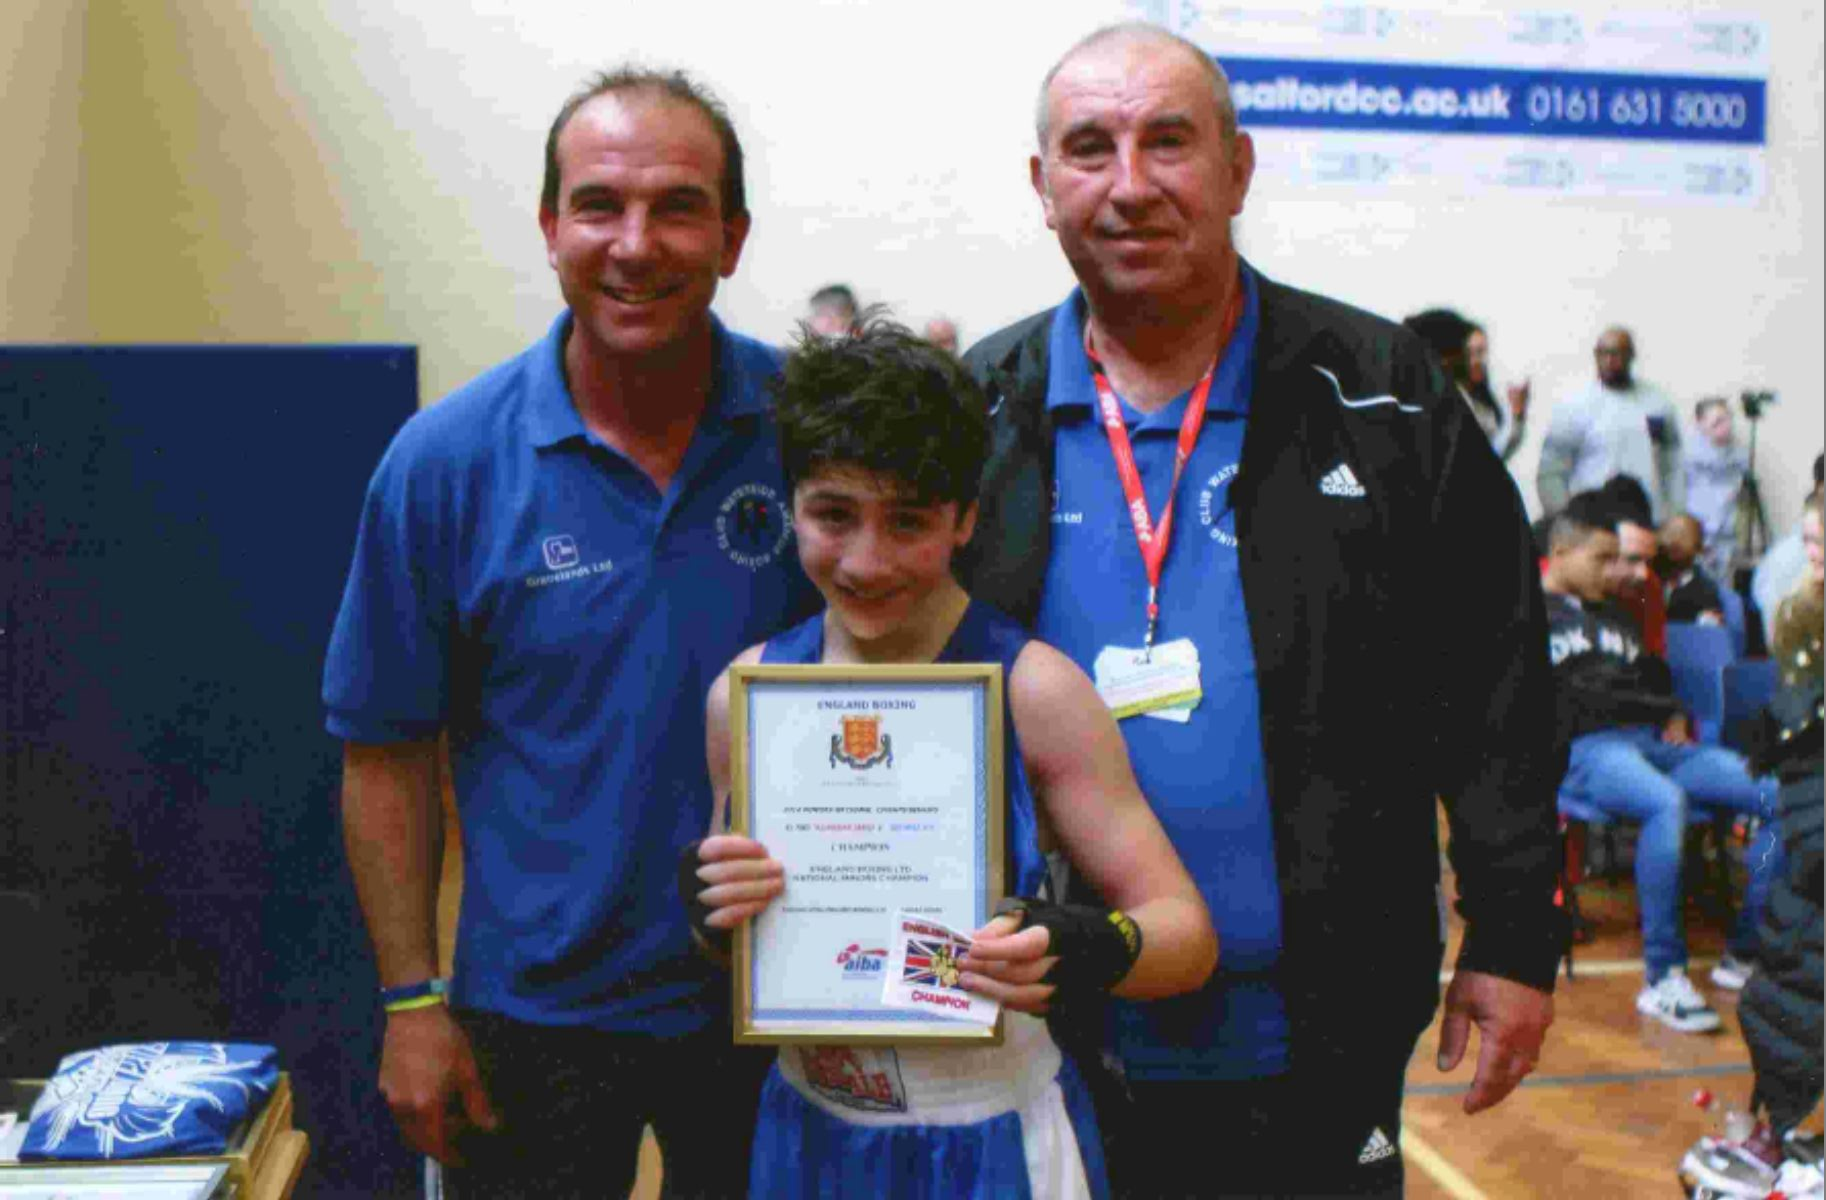 12-year-old amateur boxer George Joy, pictured with his coaches Stuart and George Pidgley from Waterside Amateur Boxing Club, celebrates his National Minors Championship win